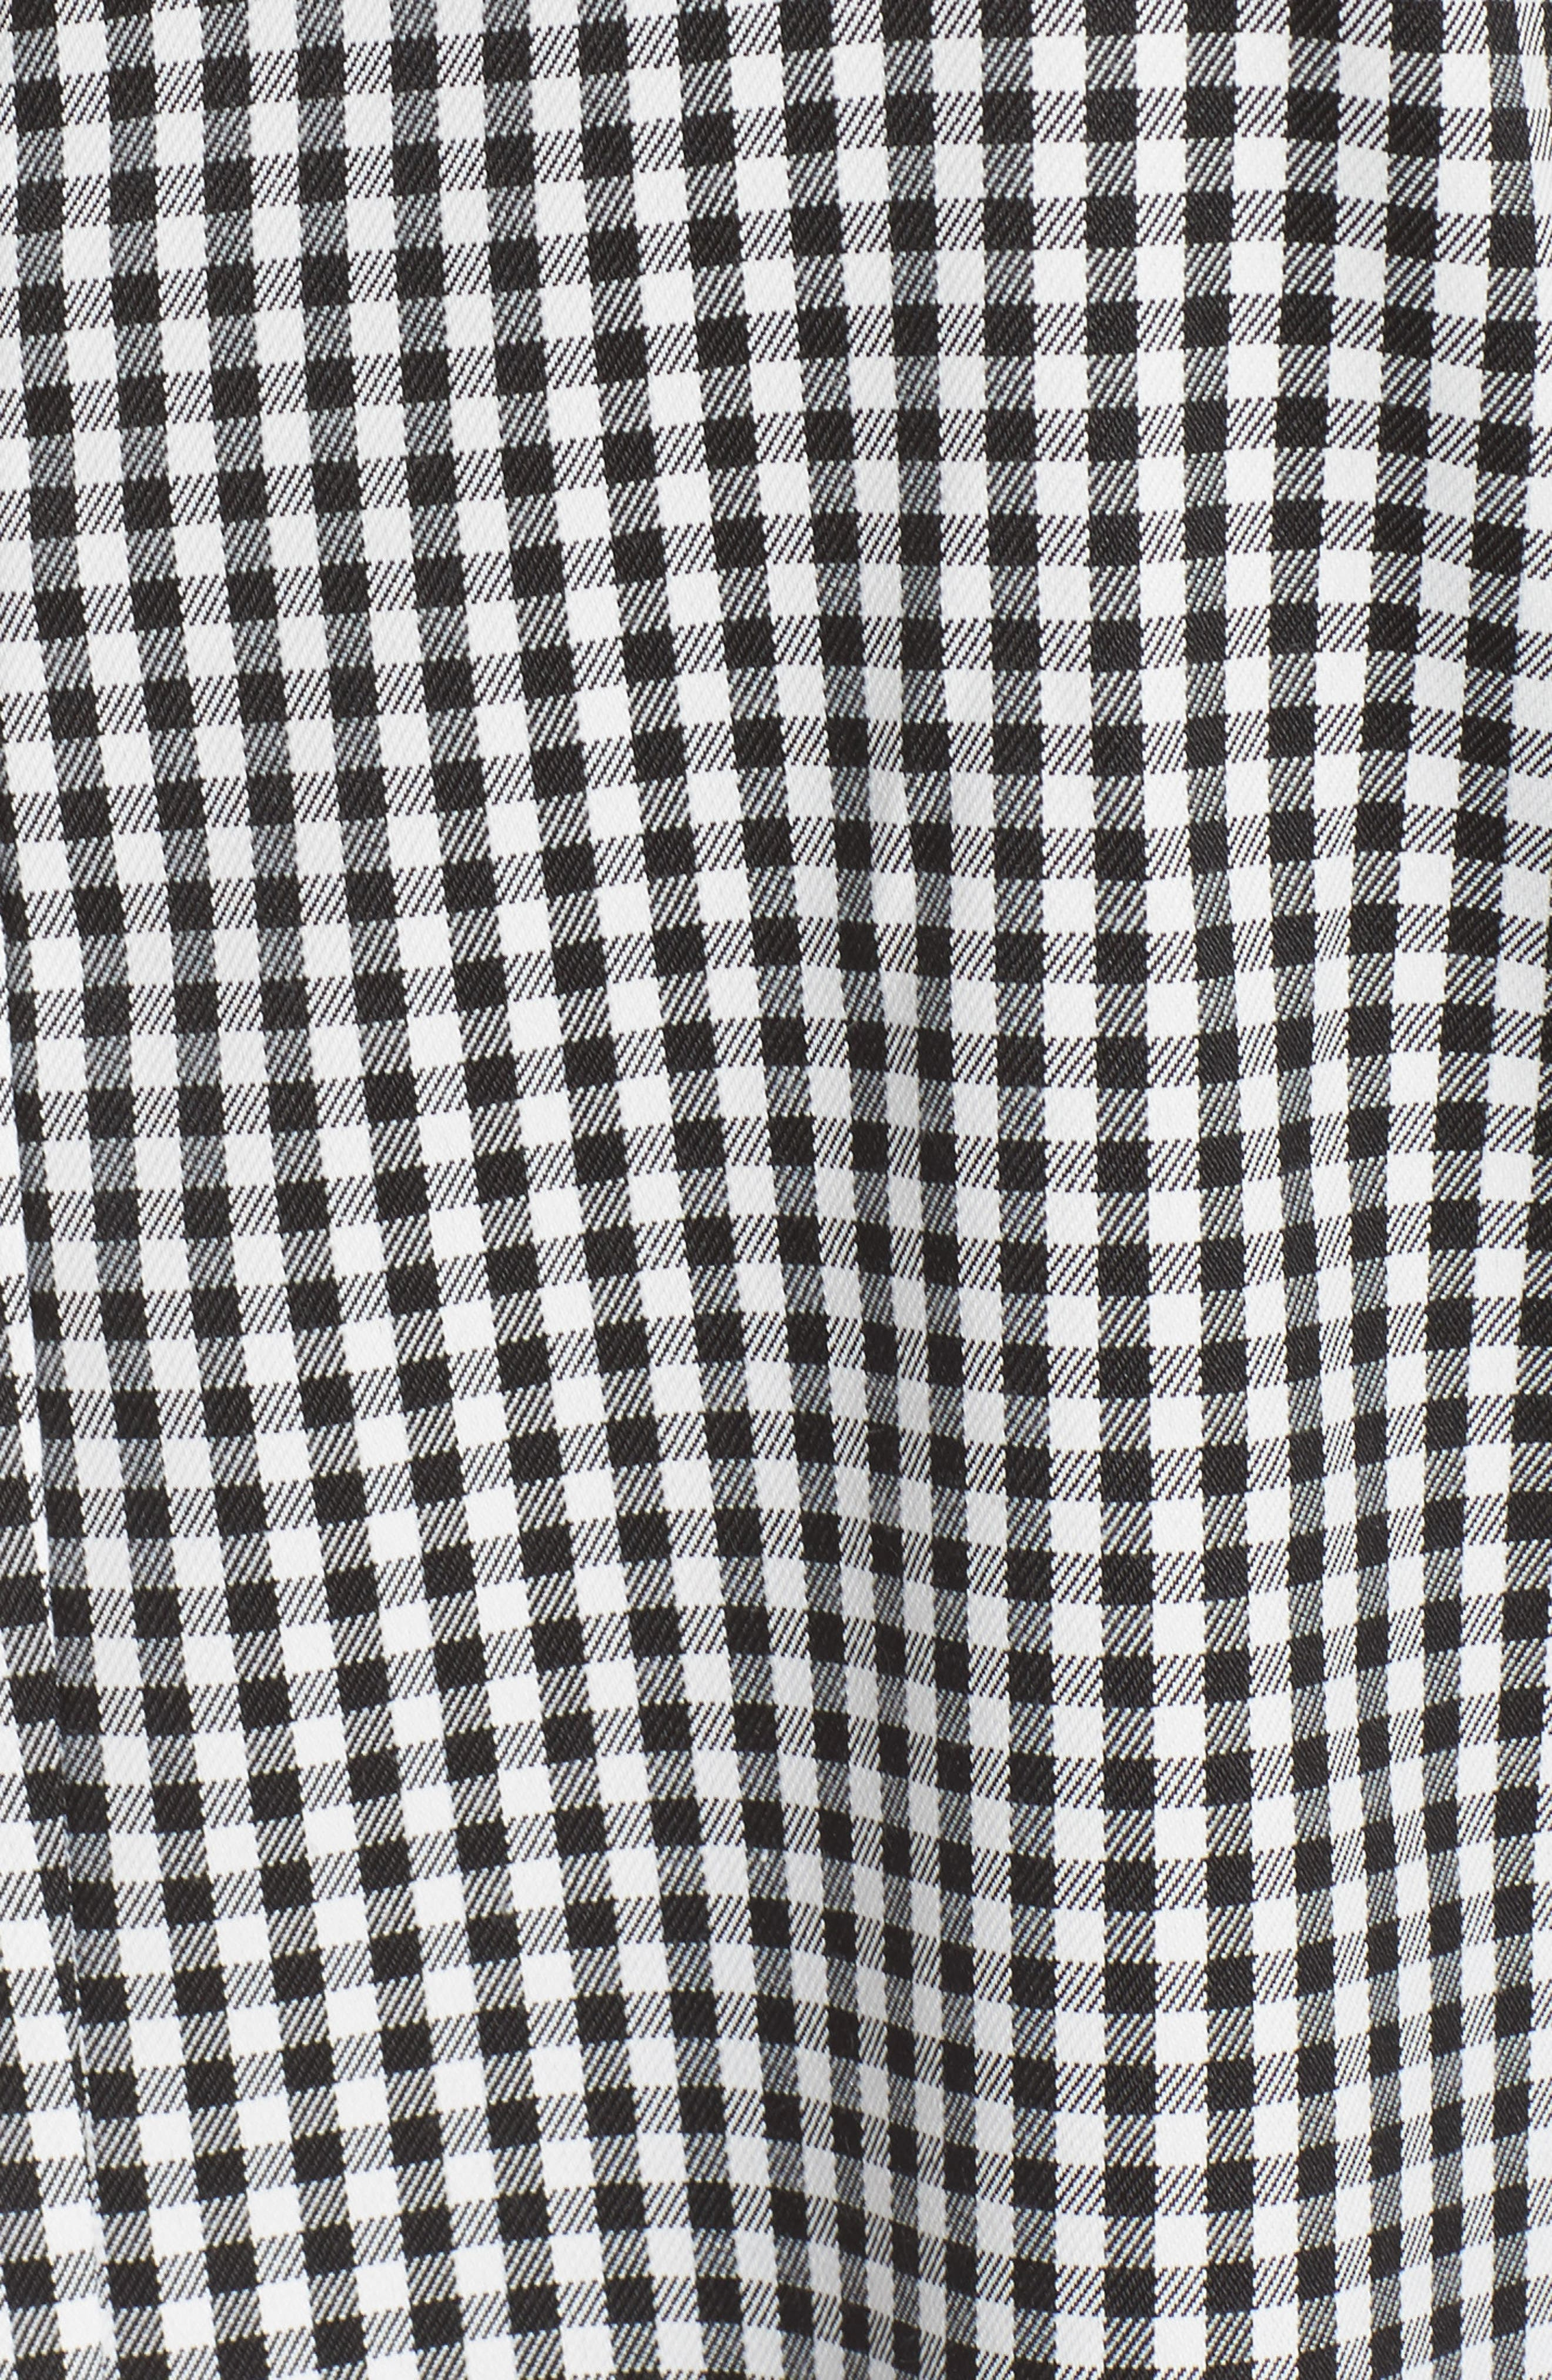 One-Shoulder Gingham Dress,                             Alternate thumbnail 6, color,                             001